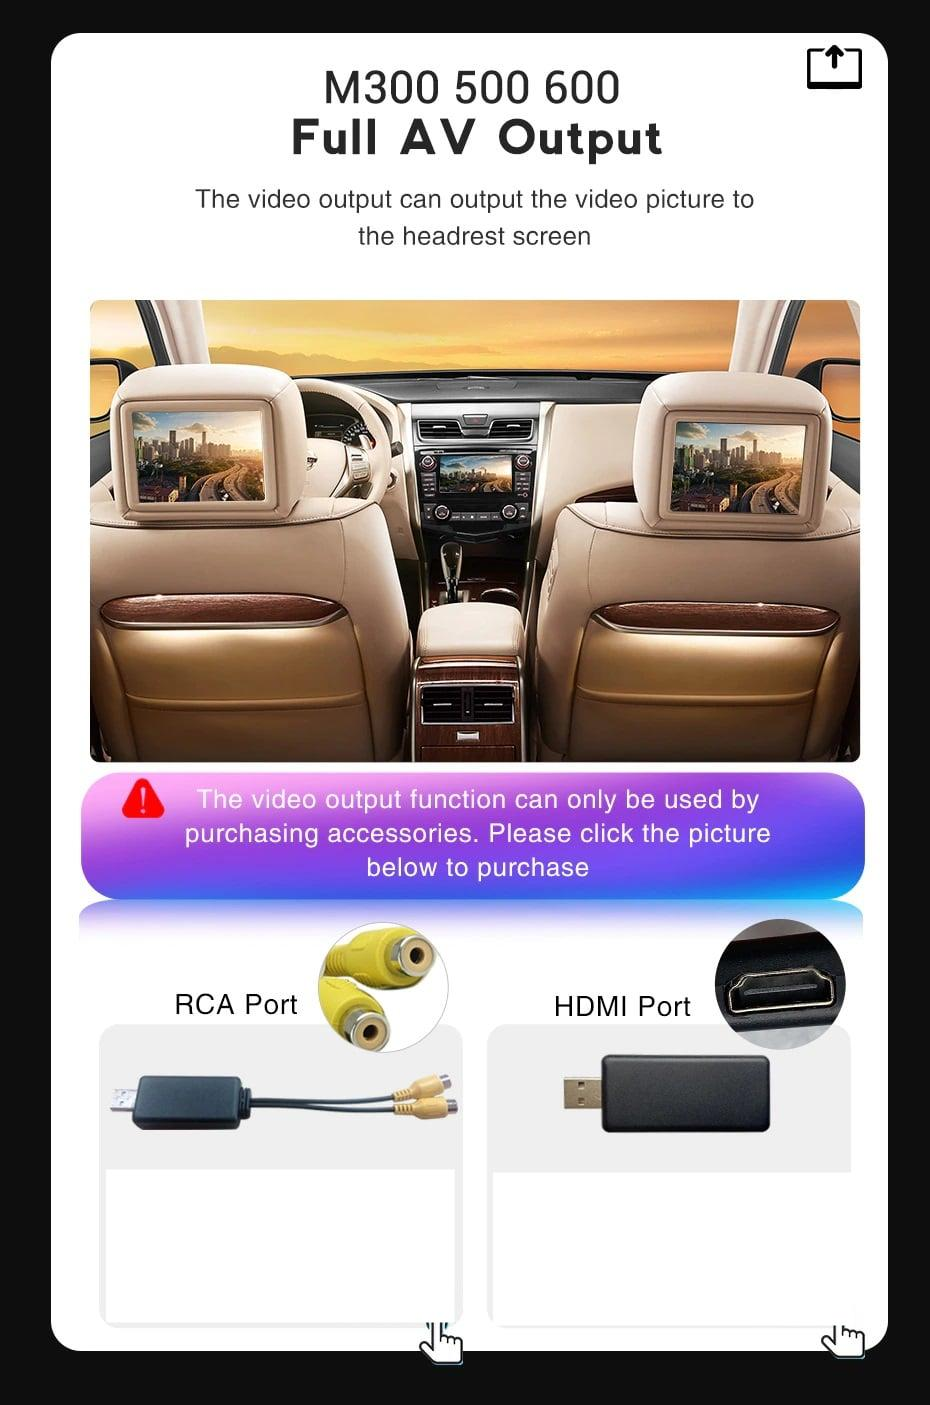 M300 M500 M600 Support Full AV Output the video to the headrest screen,also support the HDMI-compatible.but AV port and HDMI adapter need buy it alone.